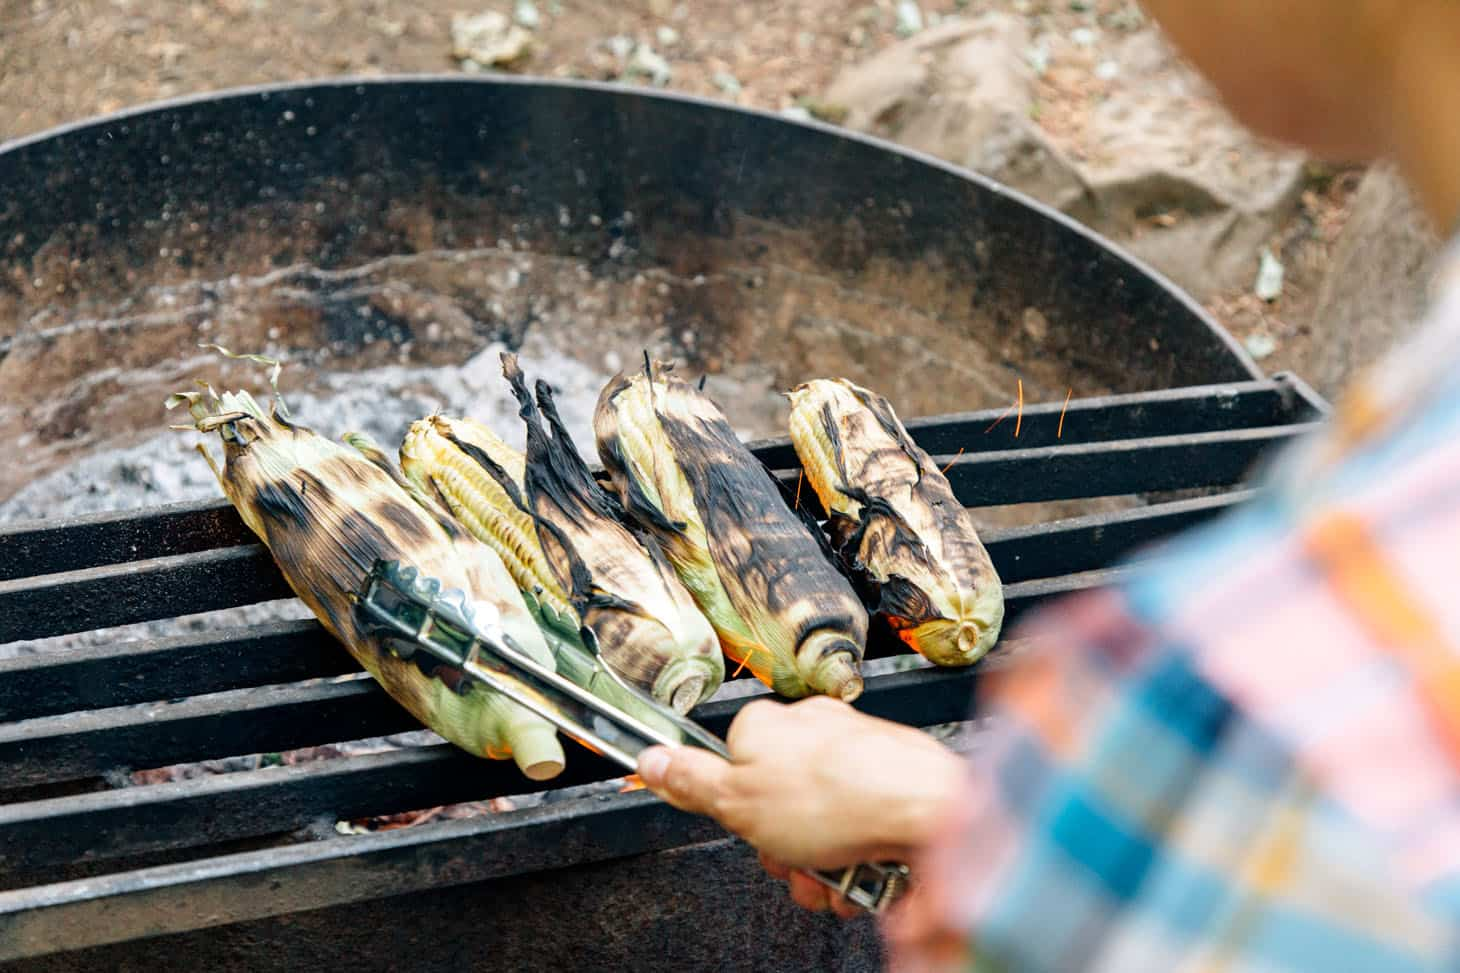 Grilling corn on a campfire